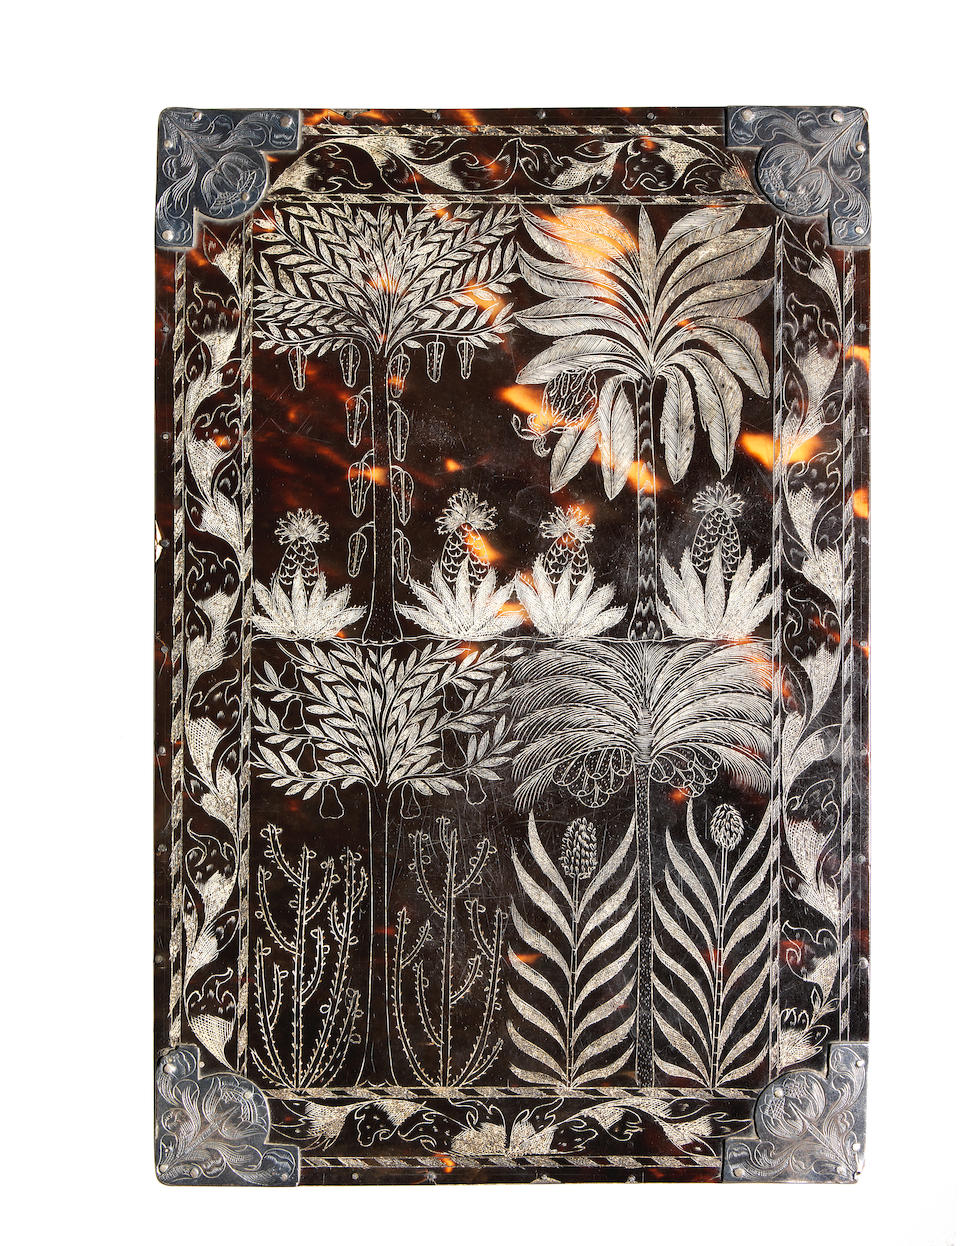 A rare late 17th century Jamaican Colonial engraved tortoiseshell and silver mounted wig comb case containing two combs dated 1683 possibly by Paul Bennett of Port Royal